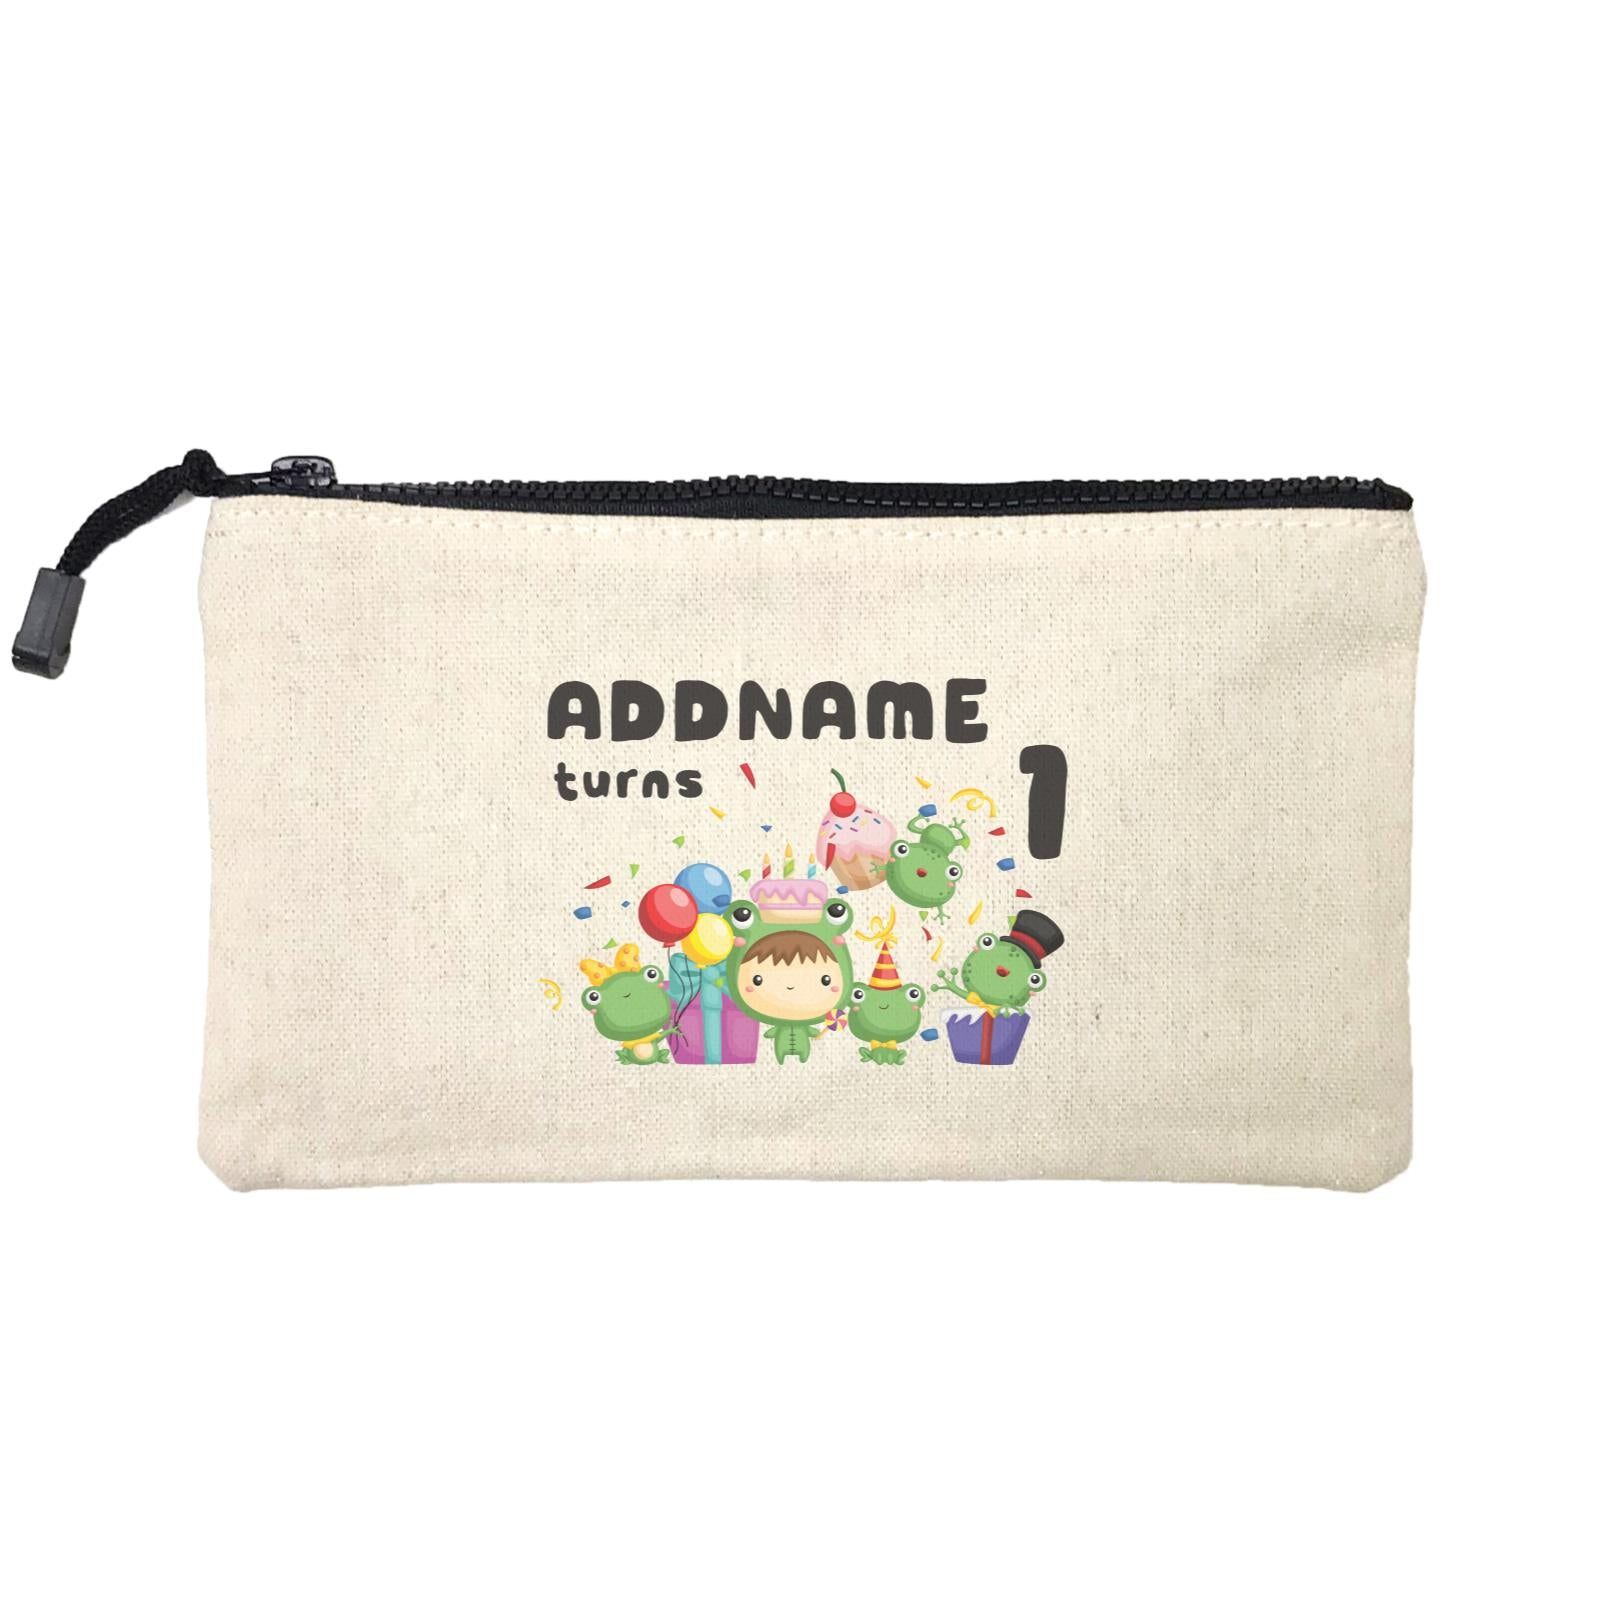 Birthday Frog Happy Frog Group Addname Turns 1 Mini Accessories Stationery Pouch